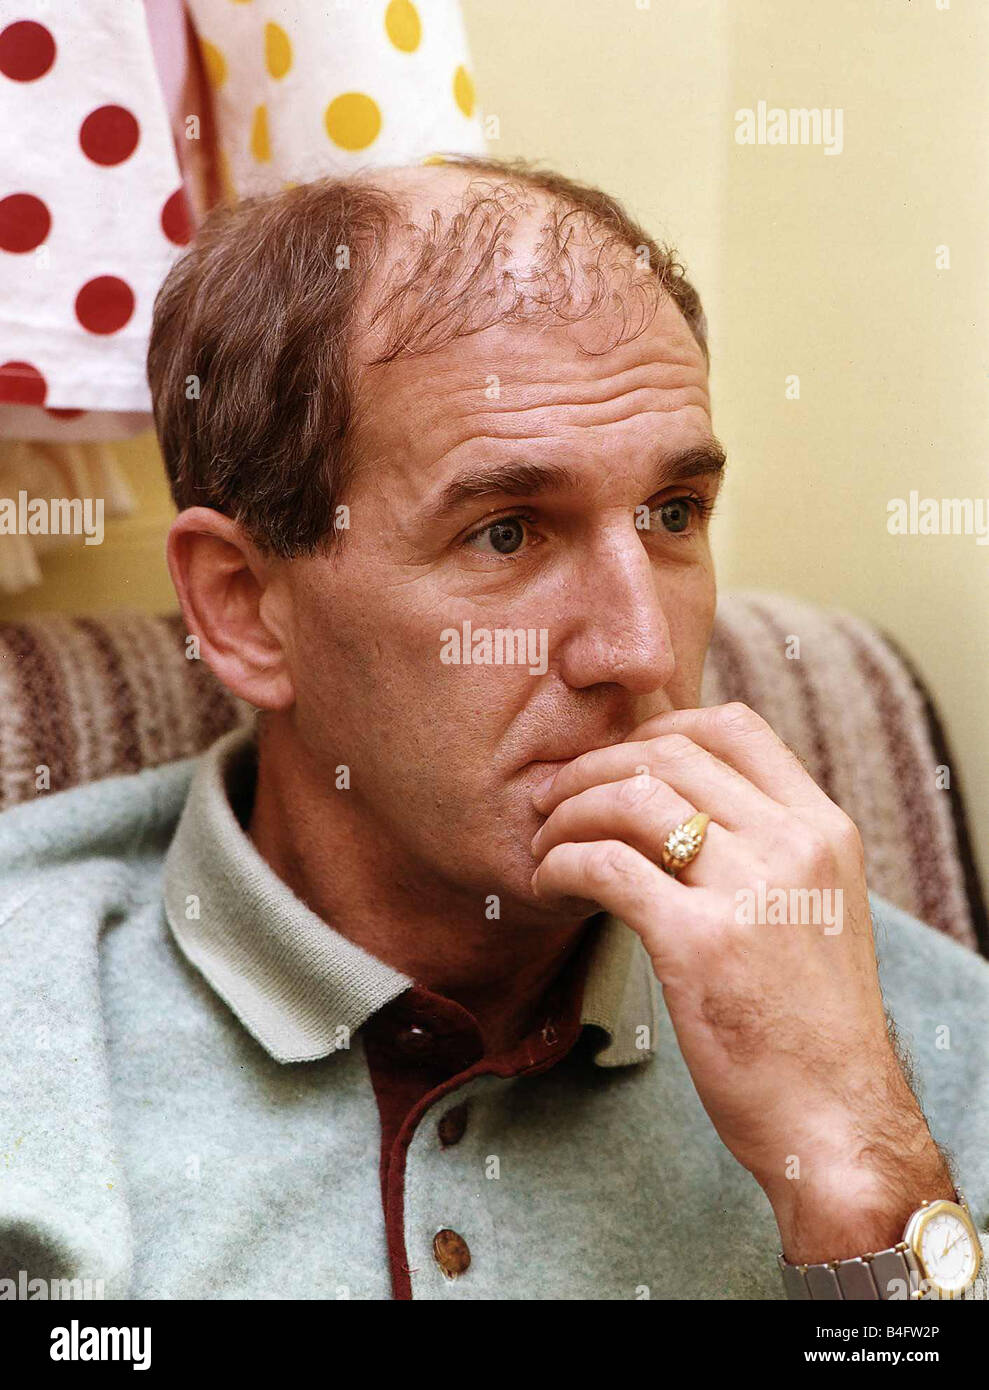 Russ Abbot in a theatre dressing room shows his Hair Transplant Mirrorpix Stock Photo - russ-abbot-in-a-theatre-dressing-room-shows-his-hair-transplant-mirrorpix-B4FW2P